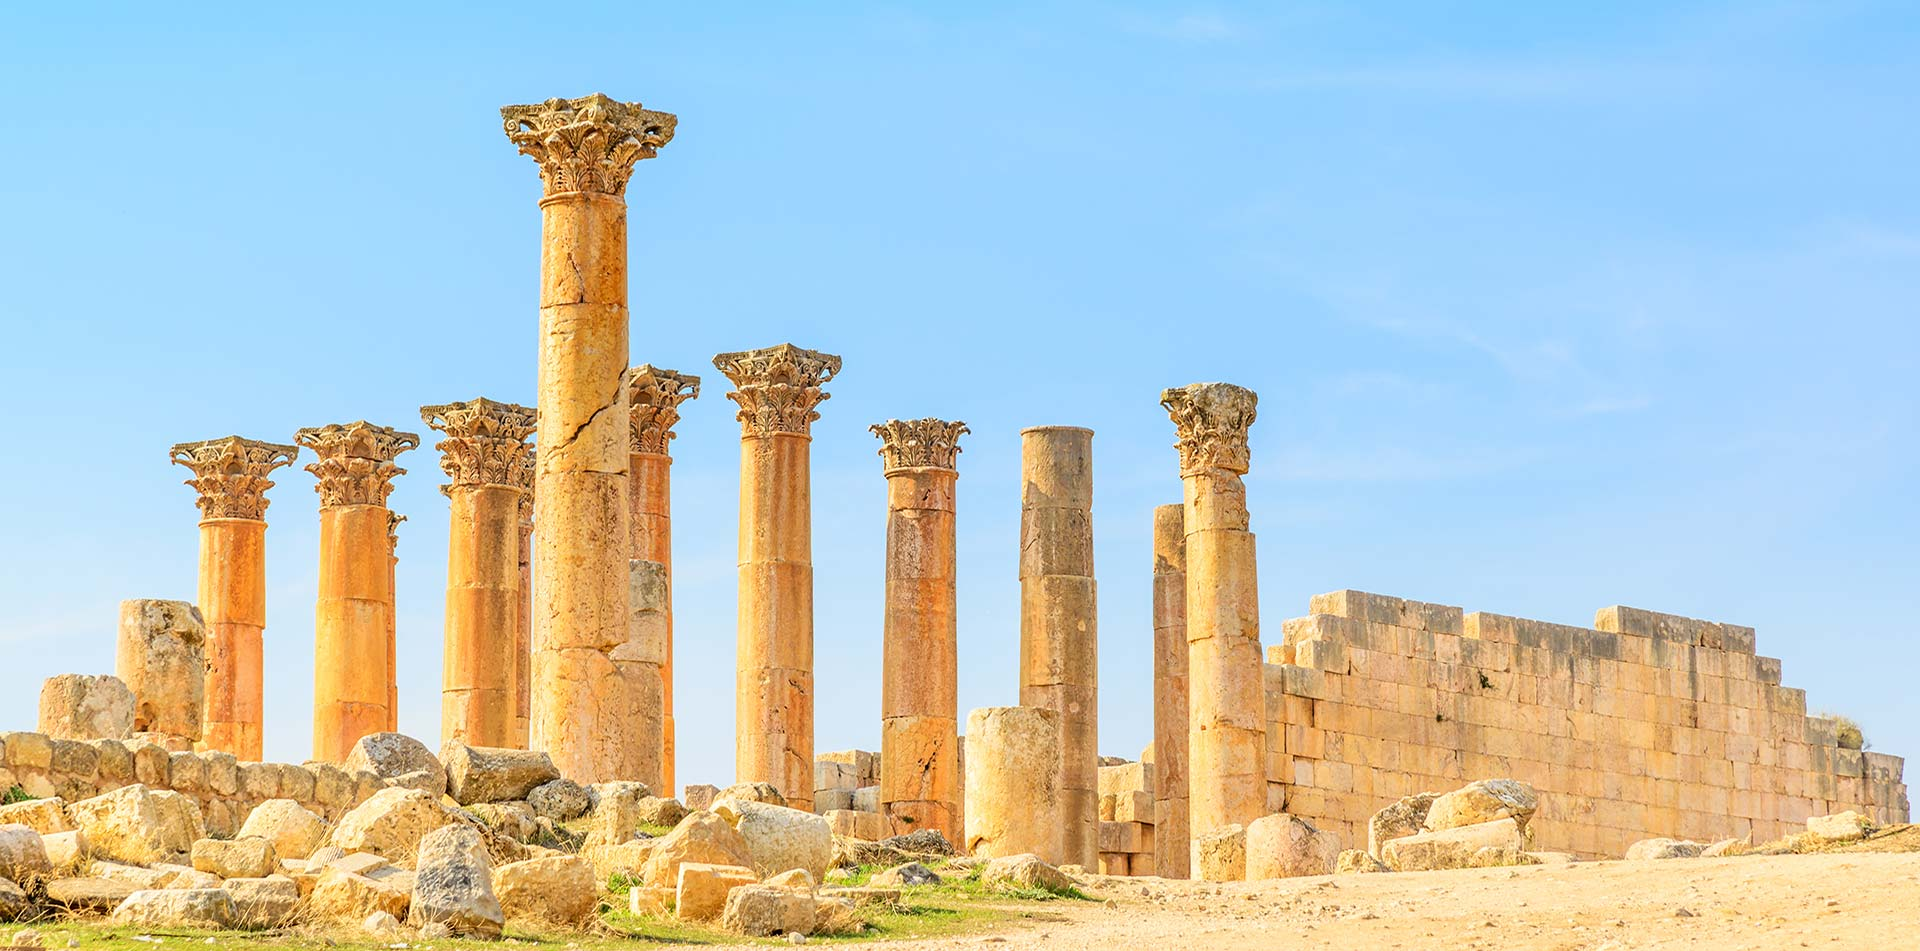 Turkey Ephesus columns in the ruins of the Greek Temple of Artemis - luxury vacation destinations